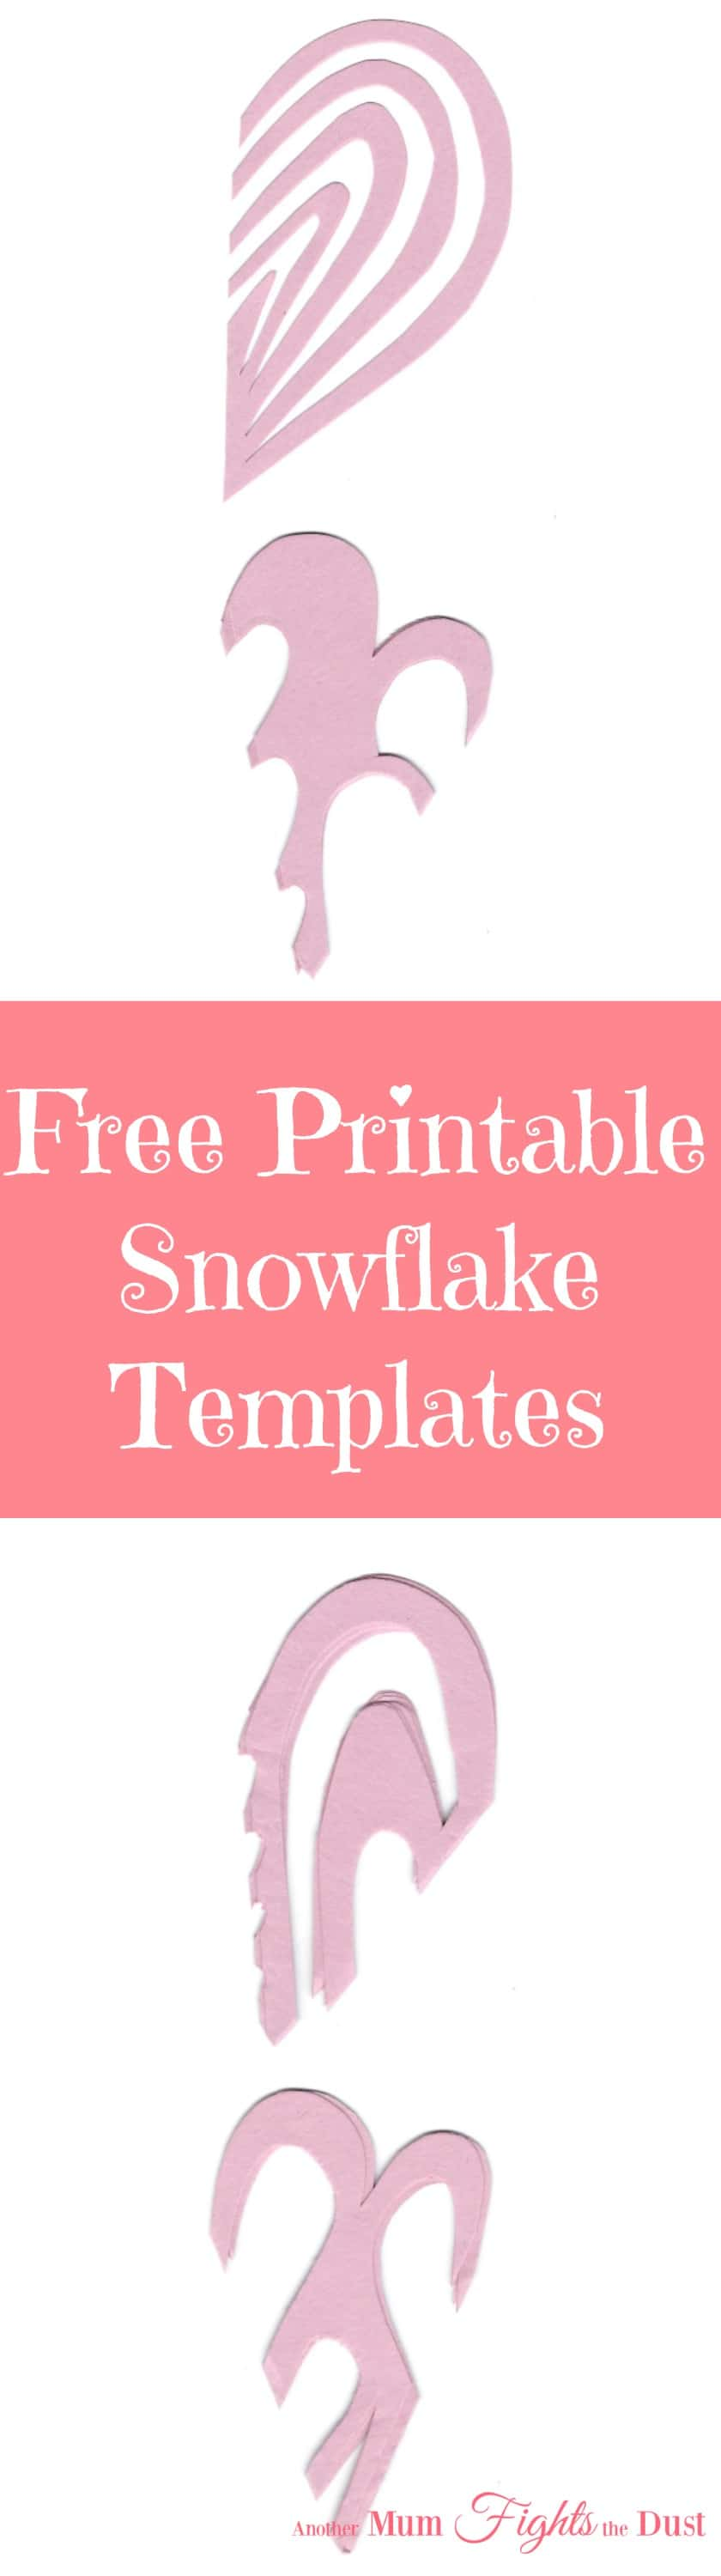 Valentine's Day Snowflakes Free Printable Template